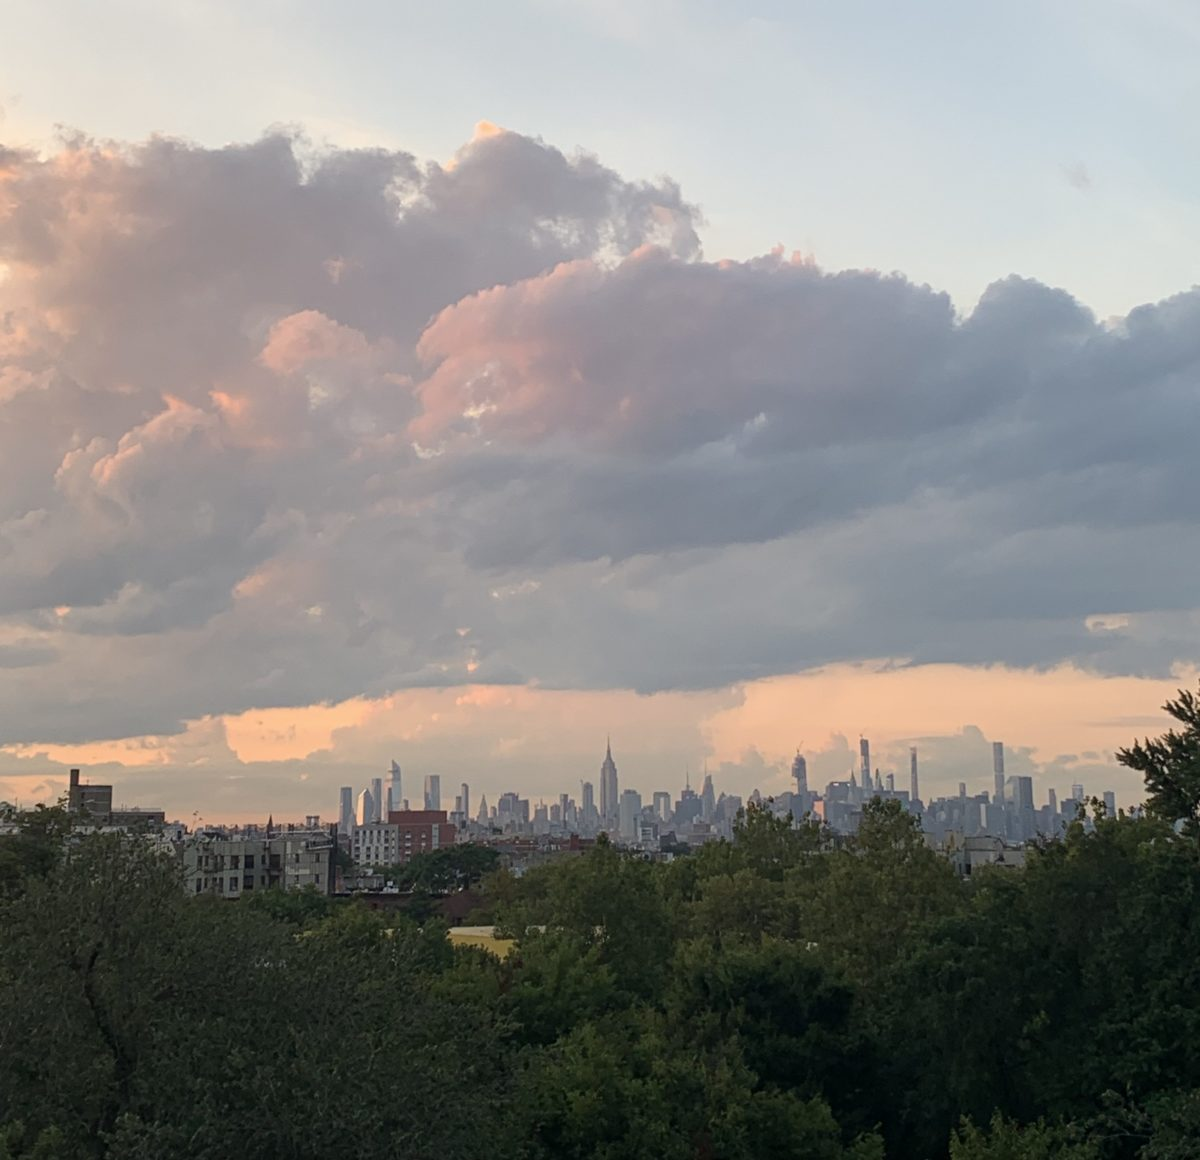 sunset view of manhattan and brooklyn from crown heights